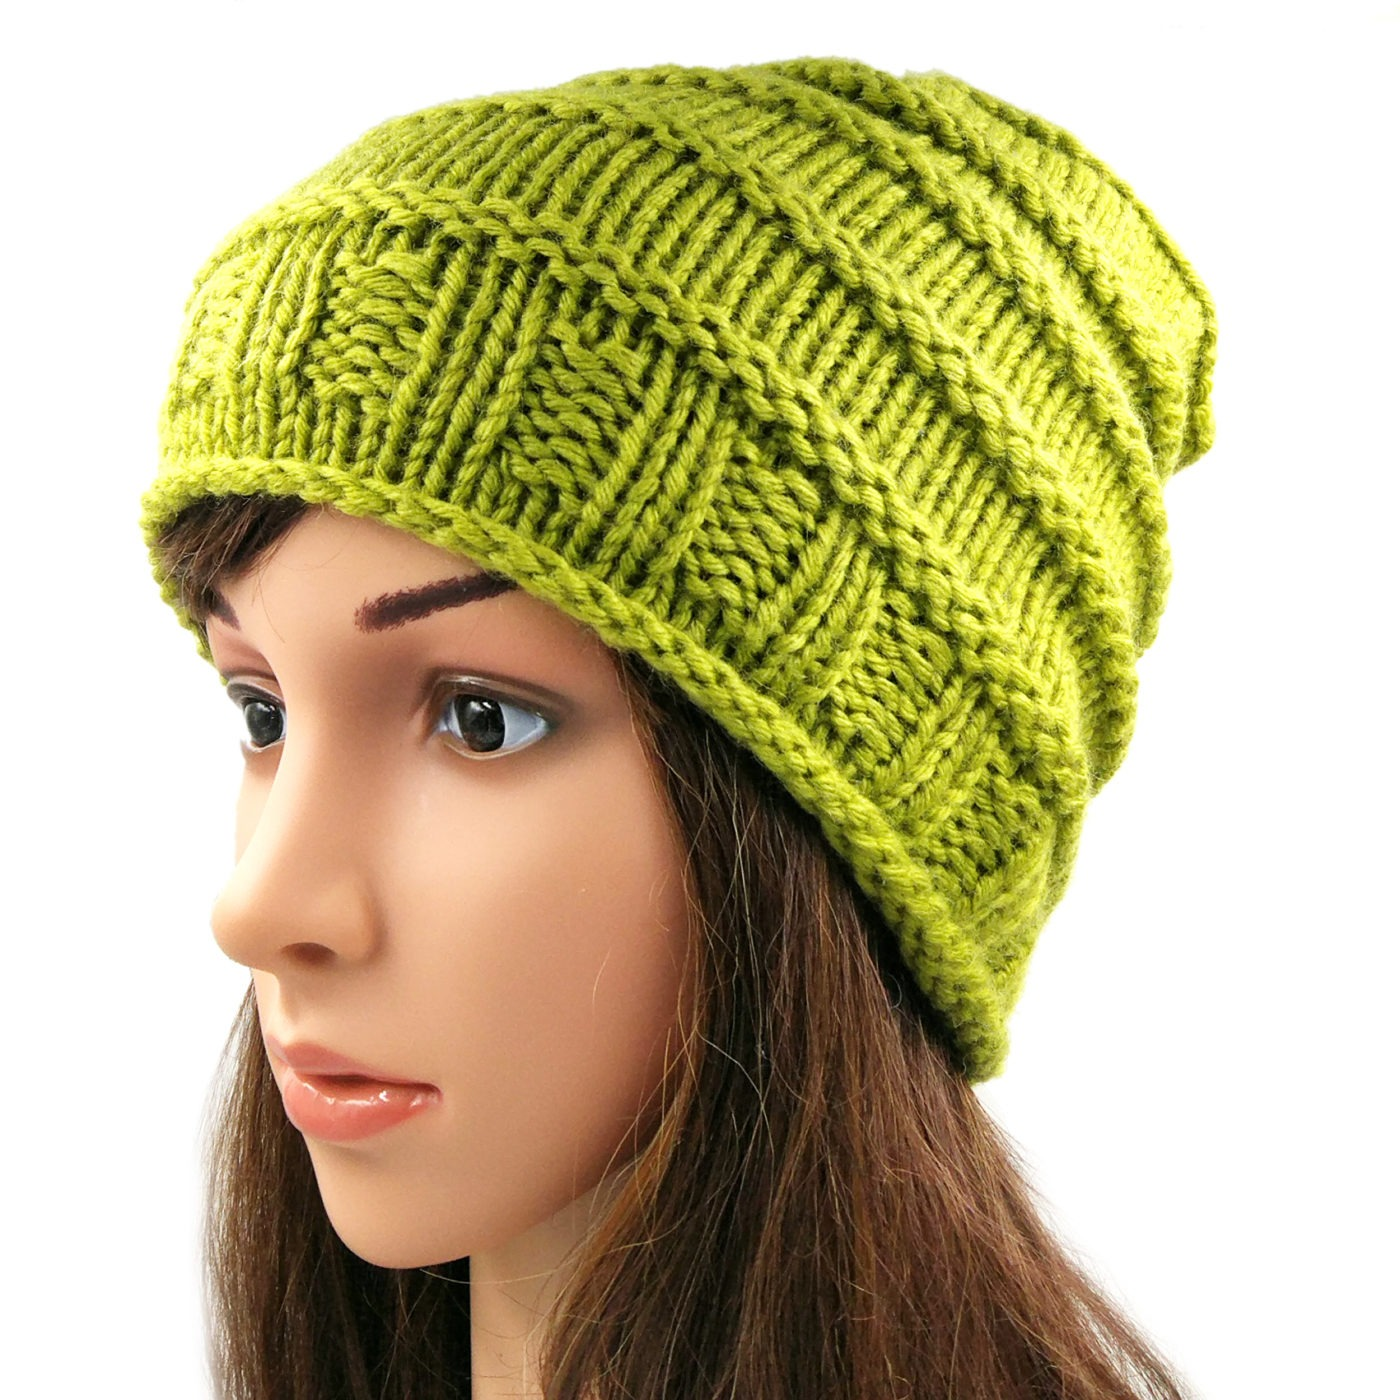 297c30731cb4e Women s Spiral Slouchy Beanie Cap - Olive Green • Magic Needles ...